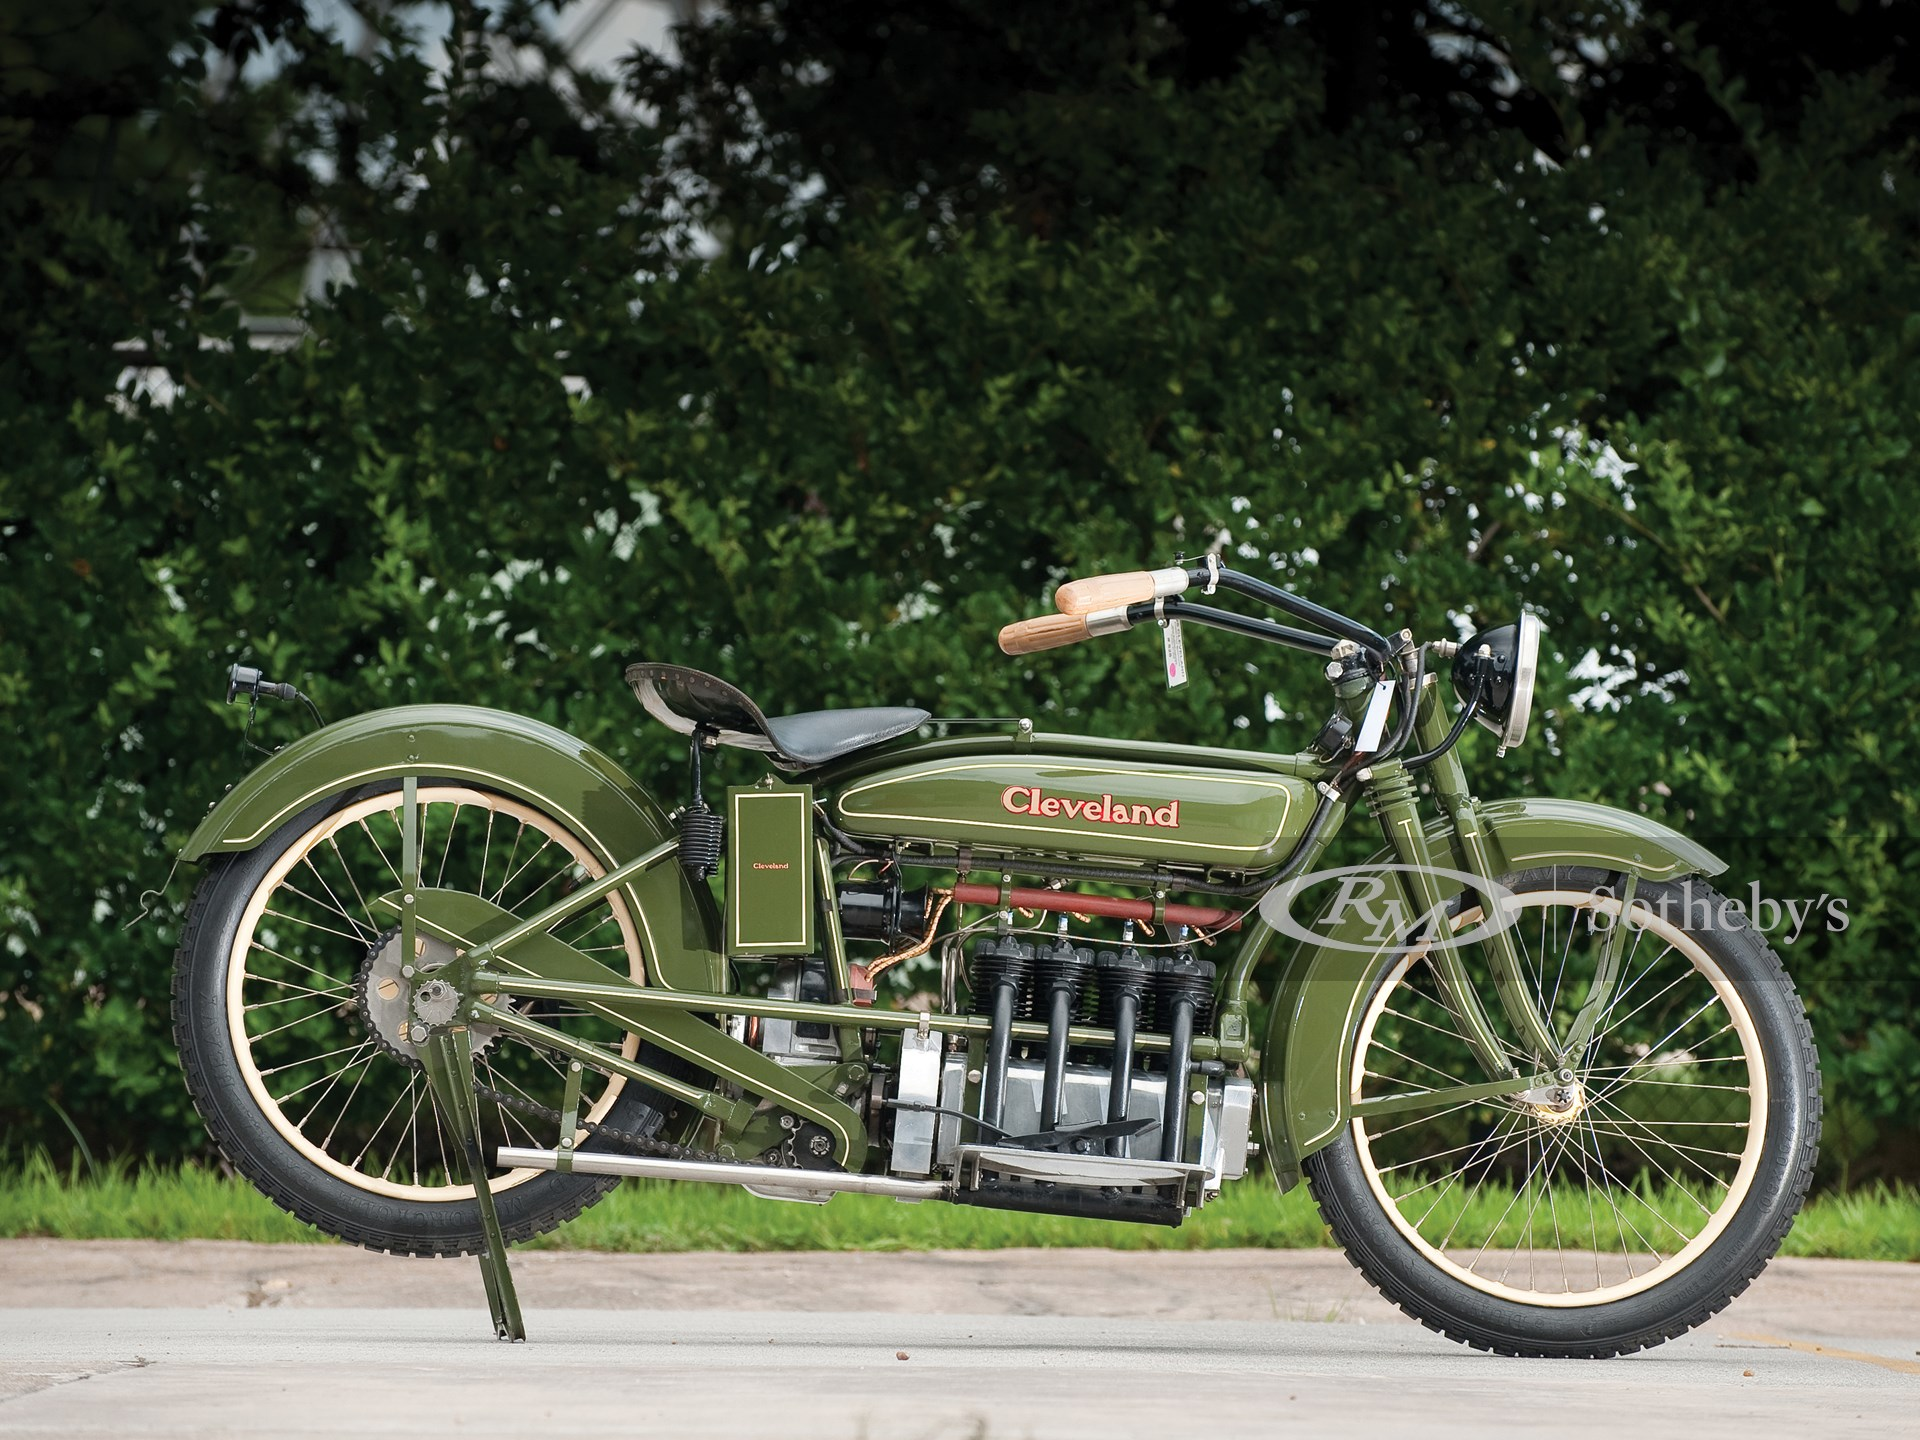 1926 Cleveland Fowler Four Motorcycle